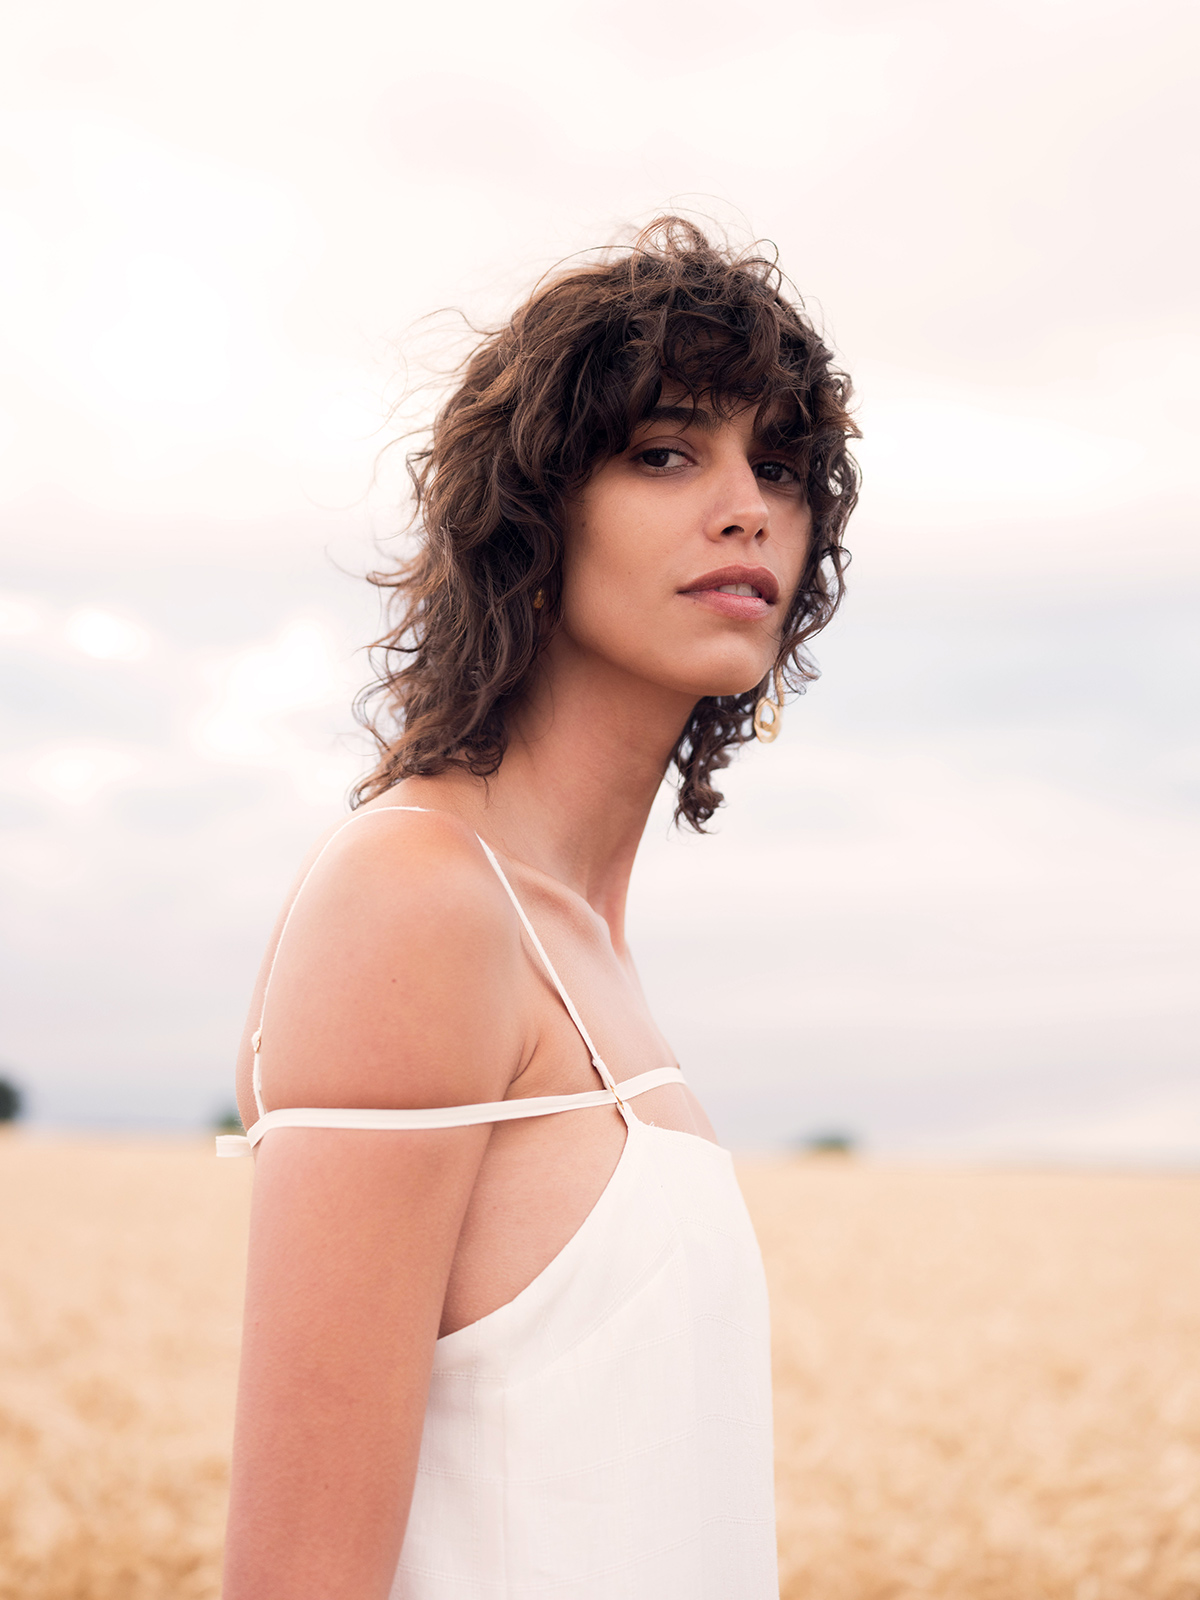 Derrida, asymmetrical dresses, and a wheat field: Deconstructing the Jacquemus Spring 2021 collection